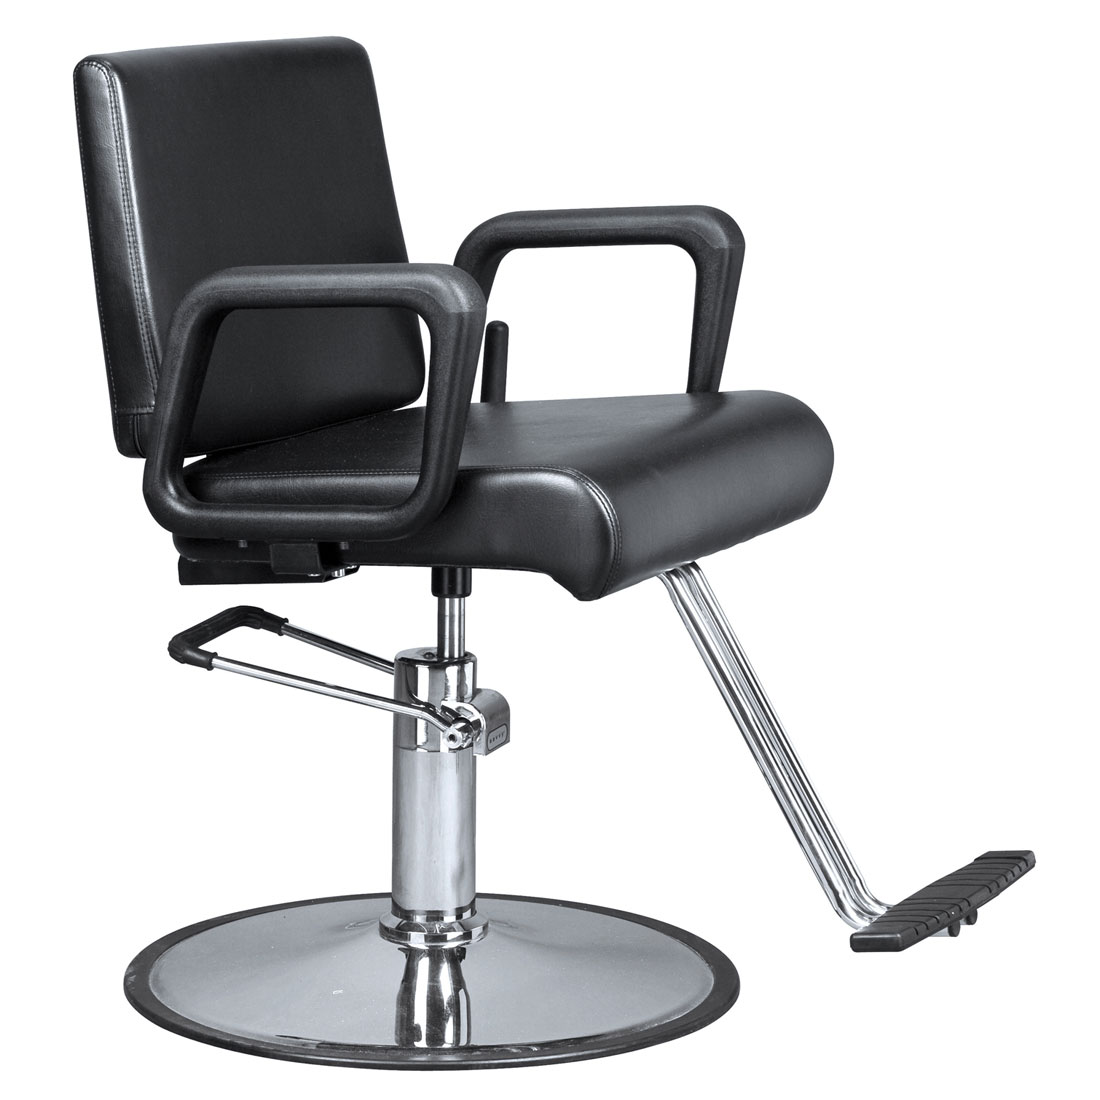 hydraulic hair styling chairs full recline zero gravity chair with massage technology savvy all purpose